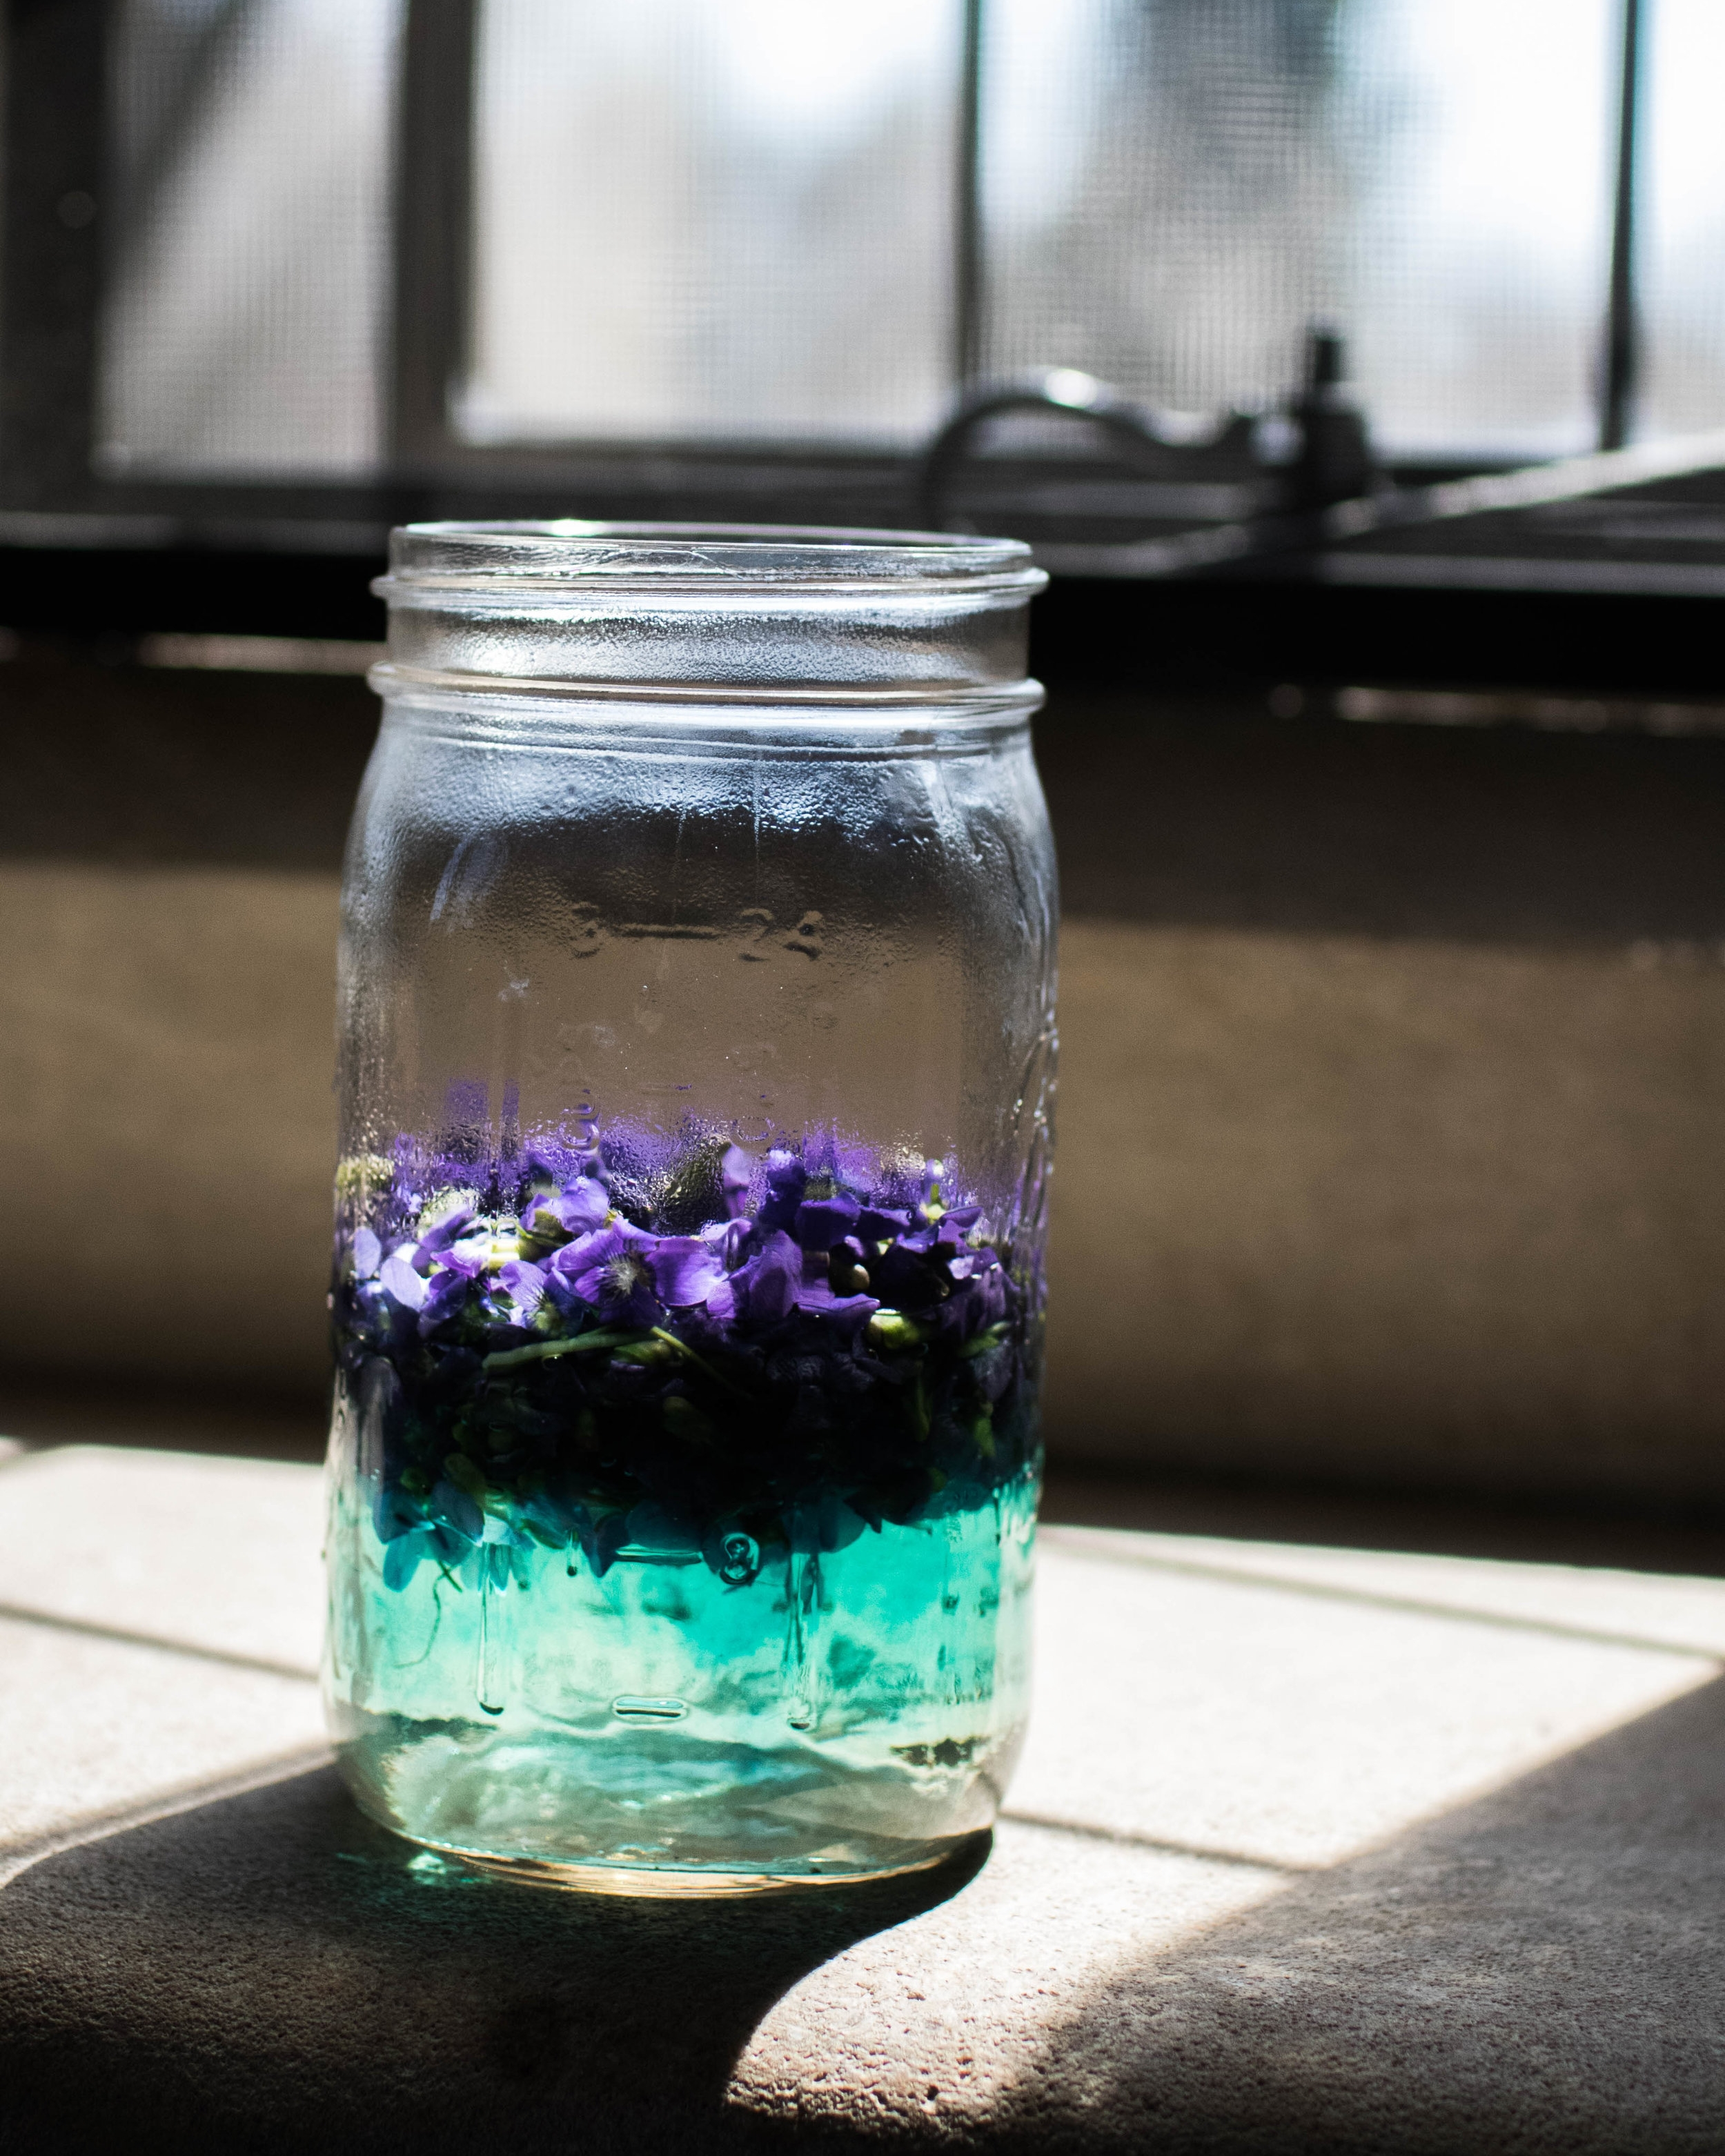 Violet Syrup in the making... Photo by FreeDom Danielle Flowers